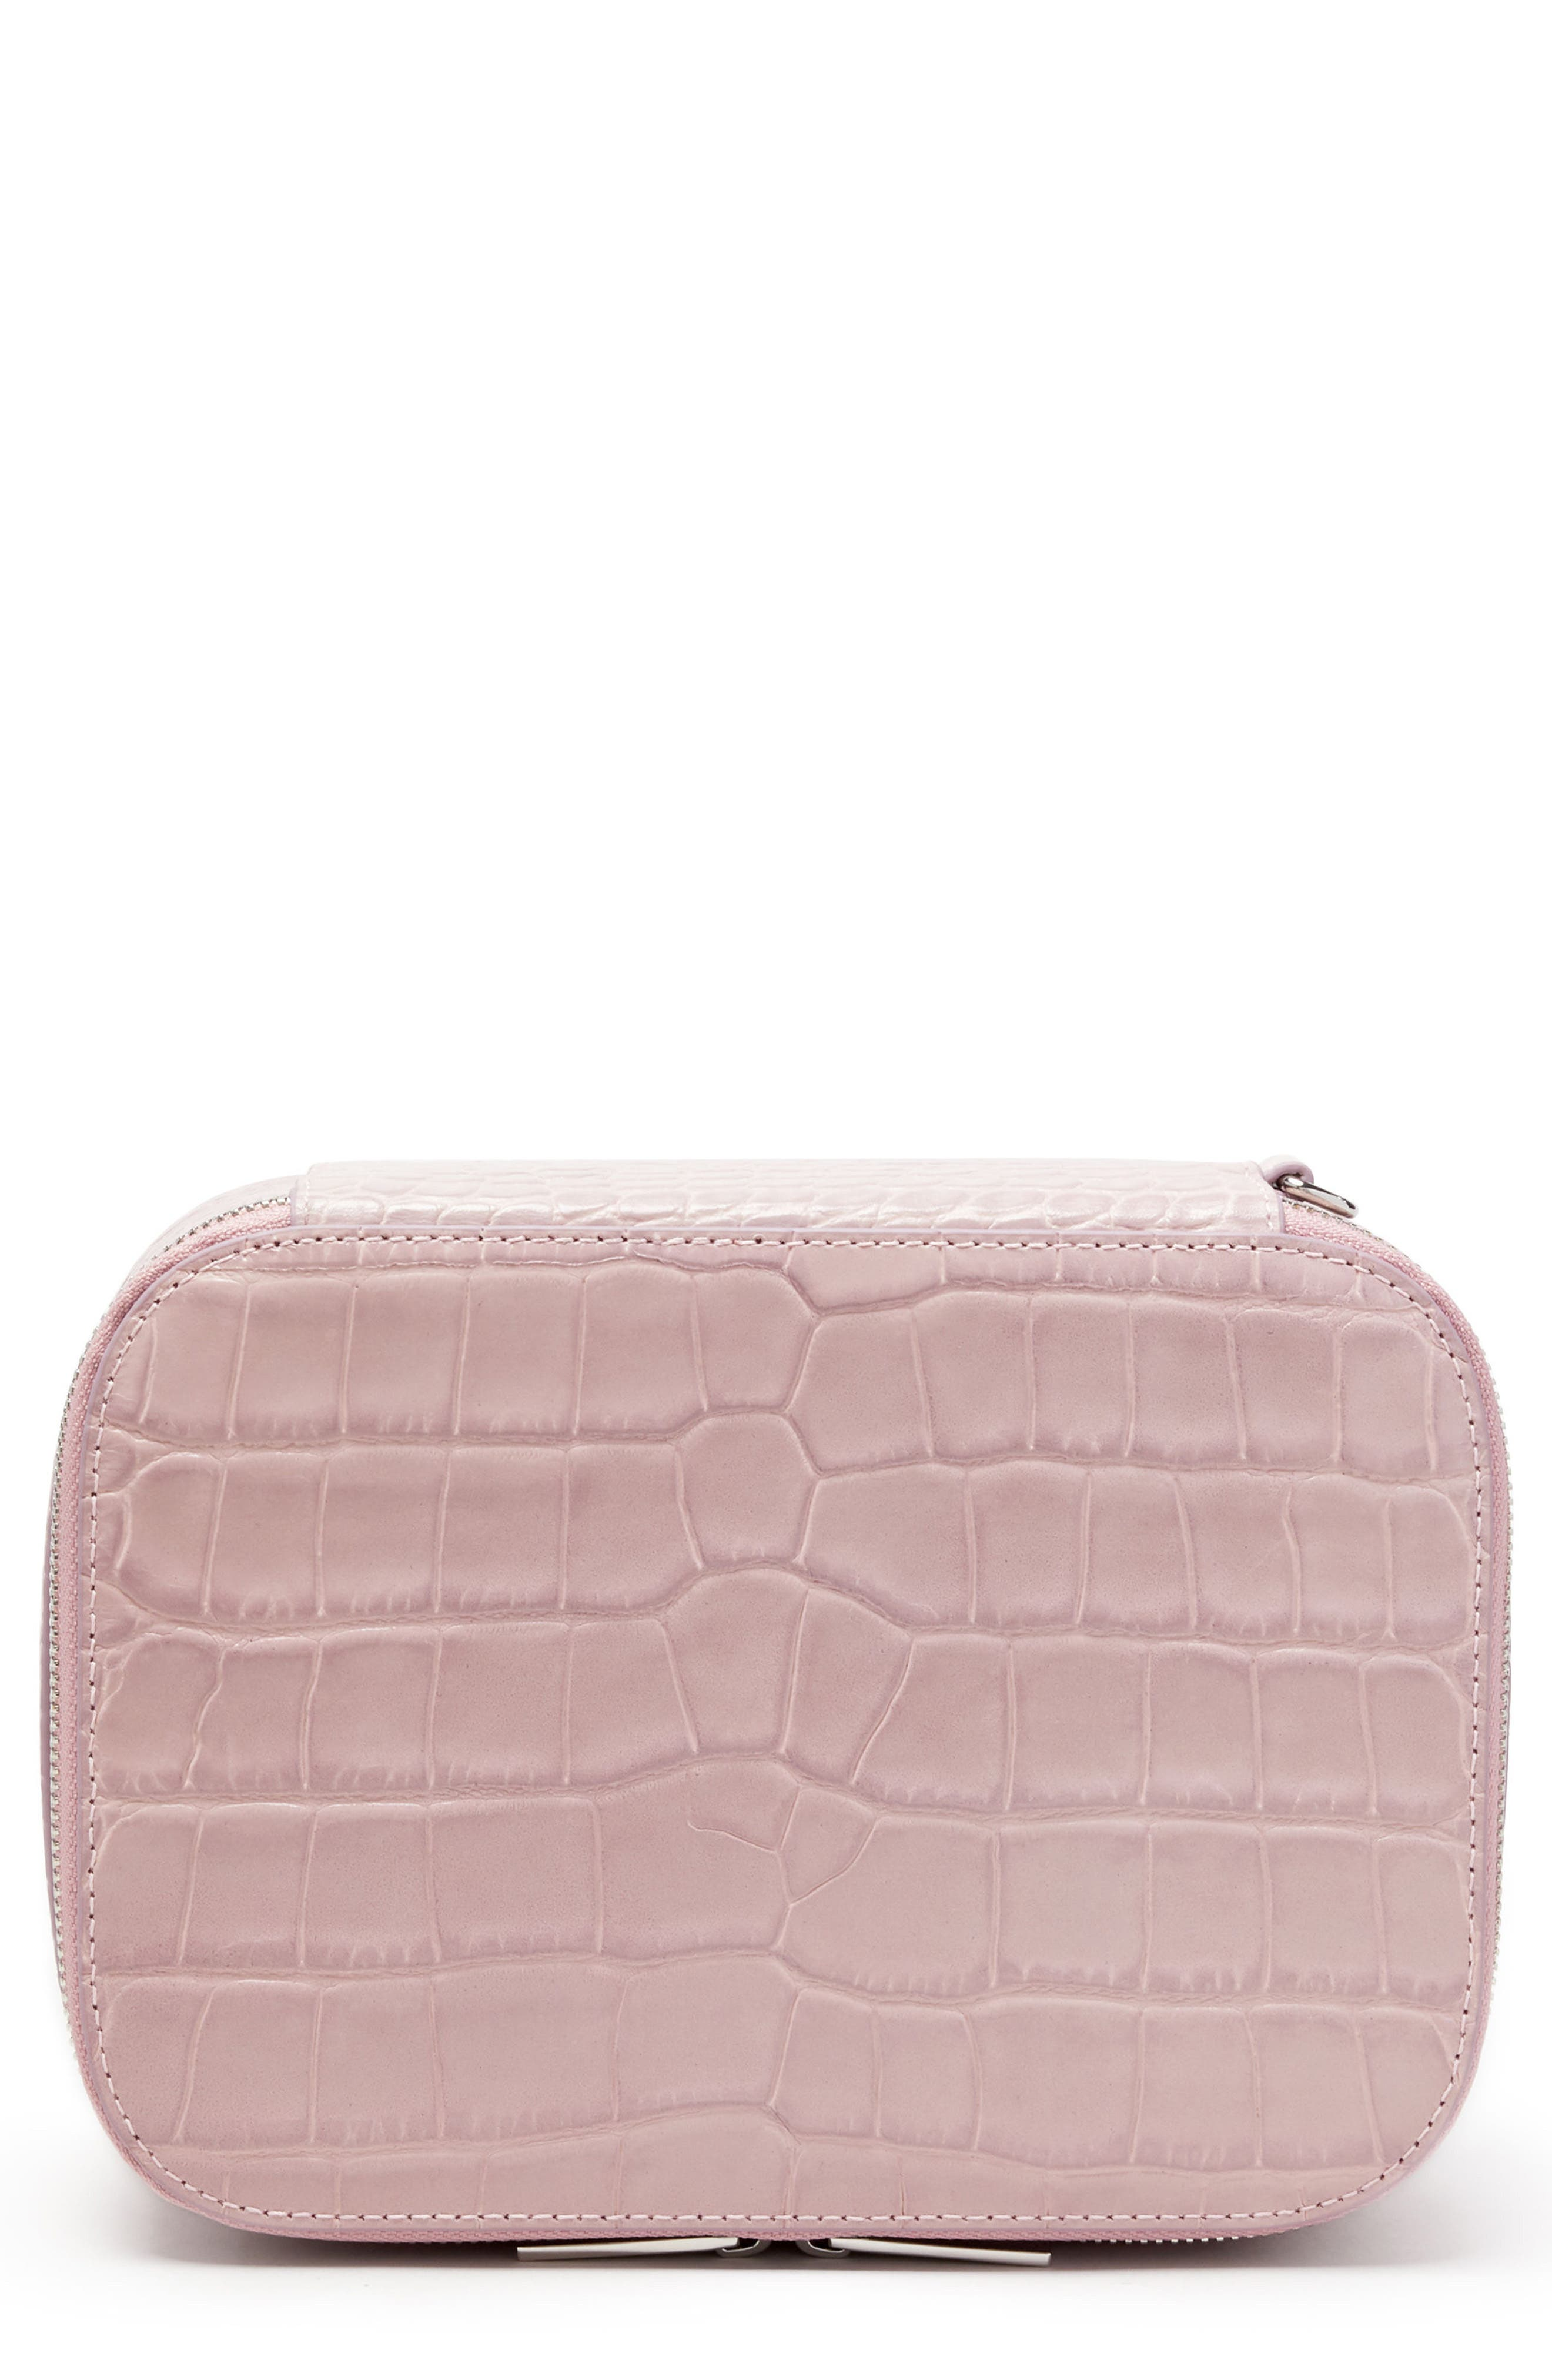 Croc Embossed Bigger Makeup Bag,                         Main,                         color, Mauve